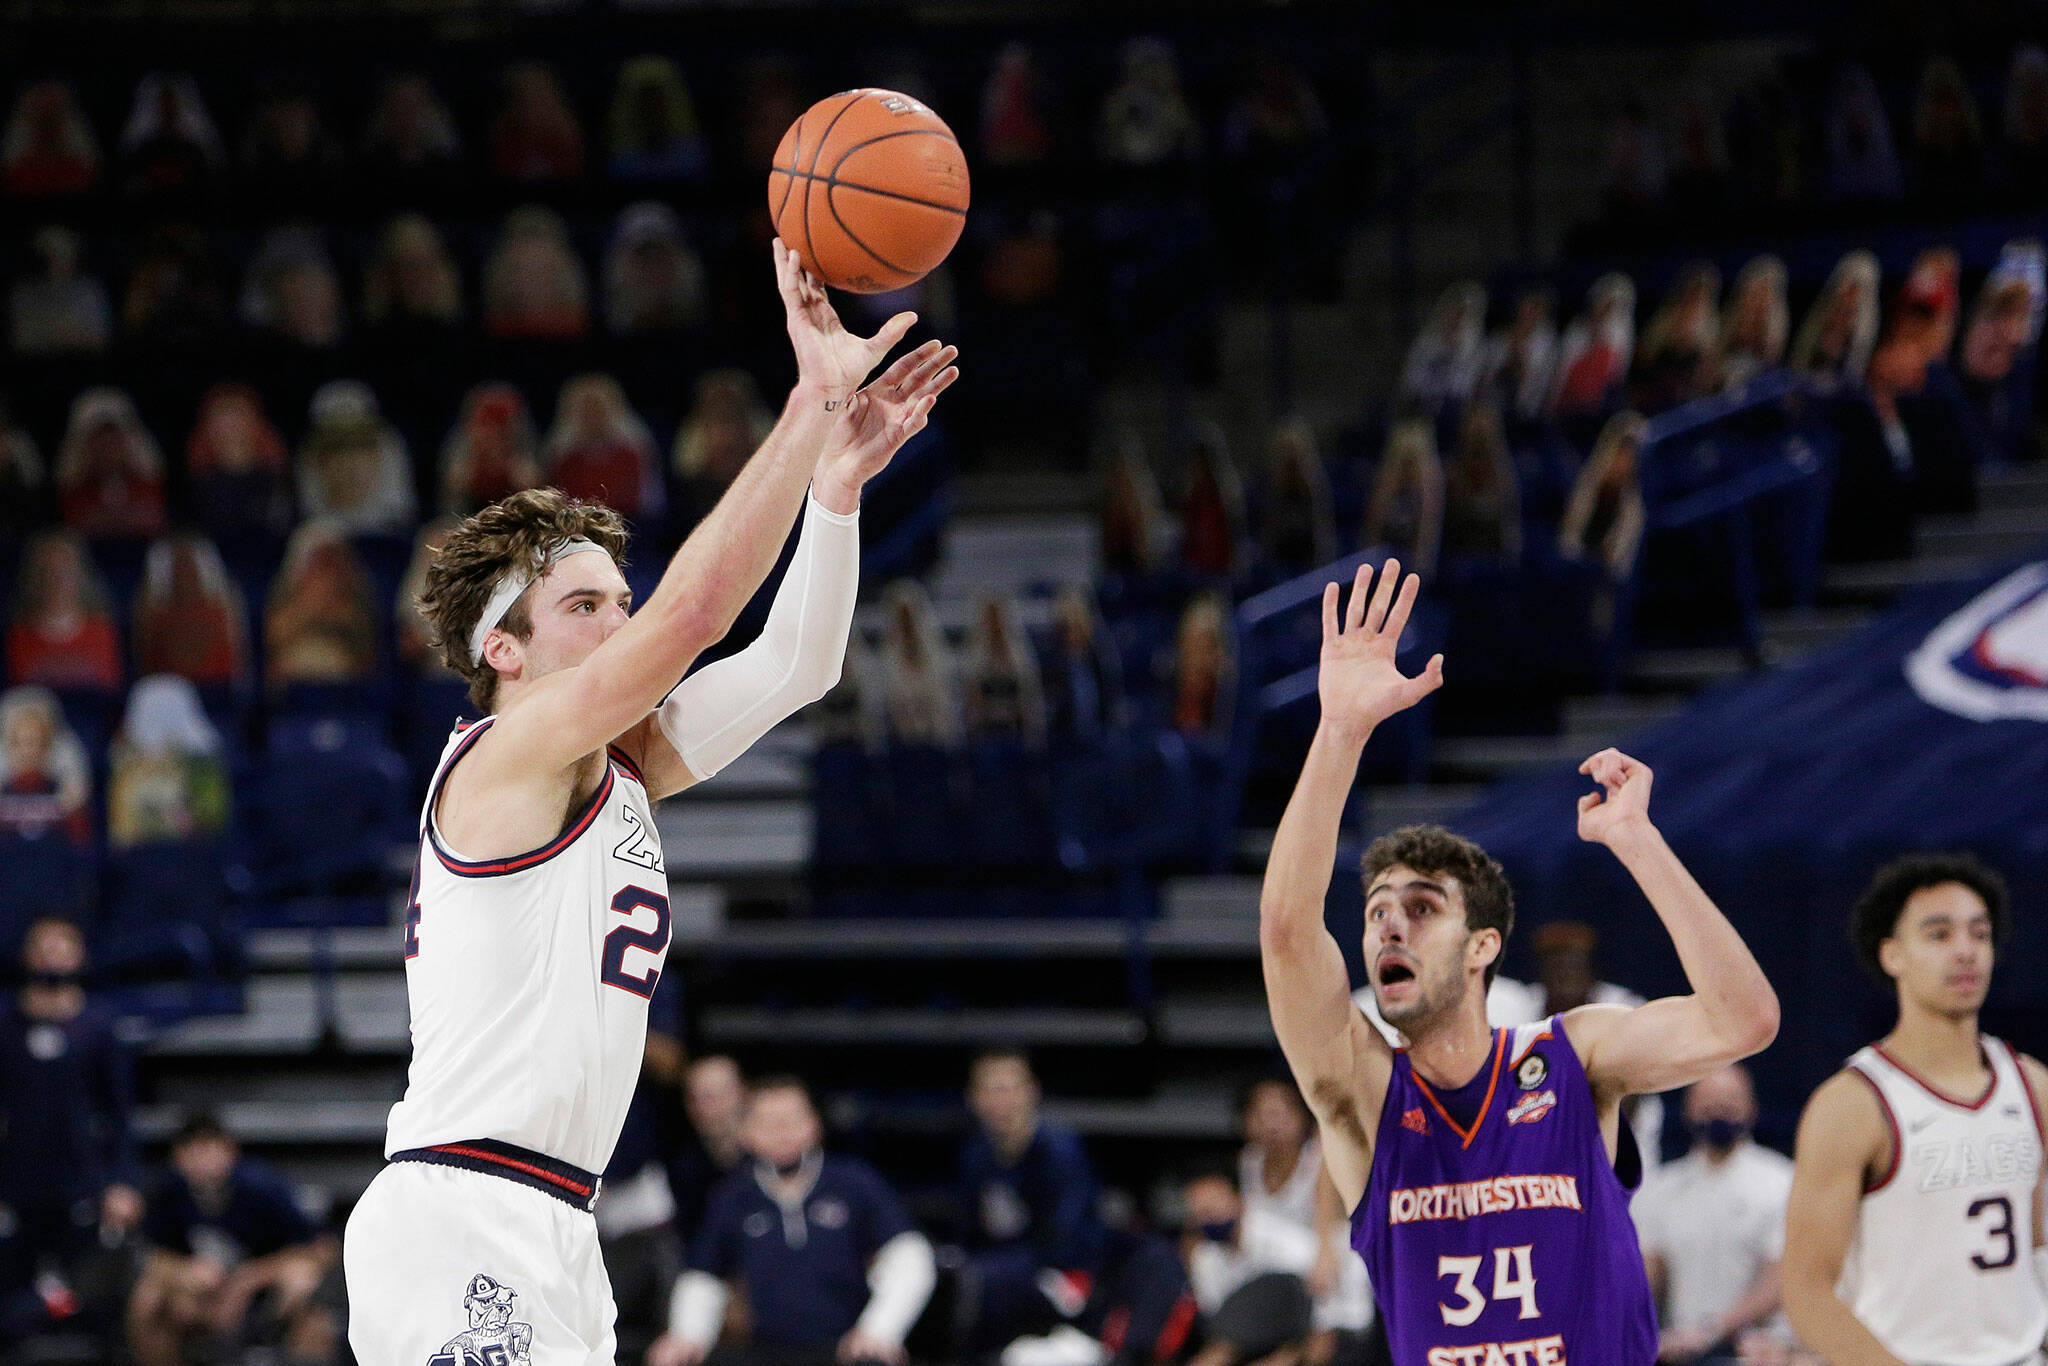 With his textbook shooting stroke, Kispert shot a scorching 44.0% from 3-point range this past season. (AP Photo/Young Kwak)